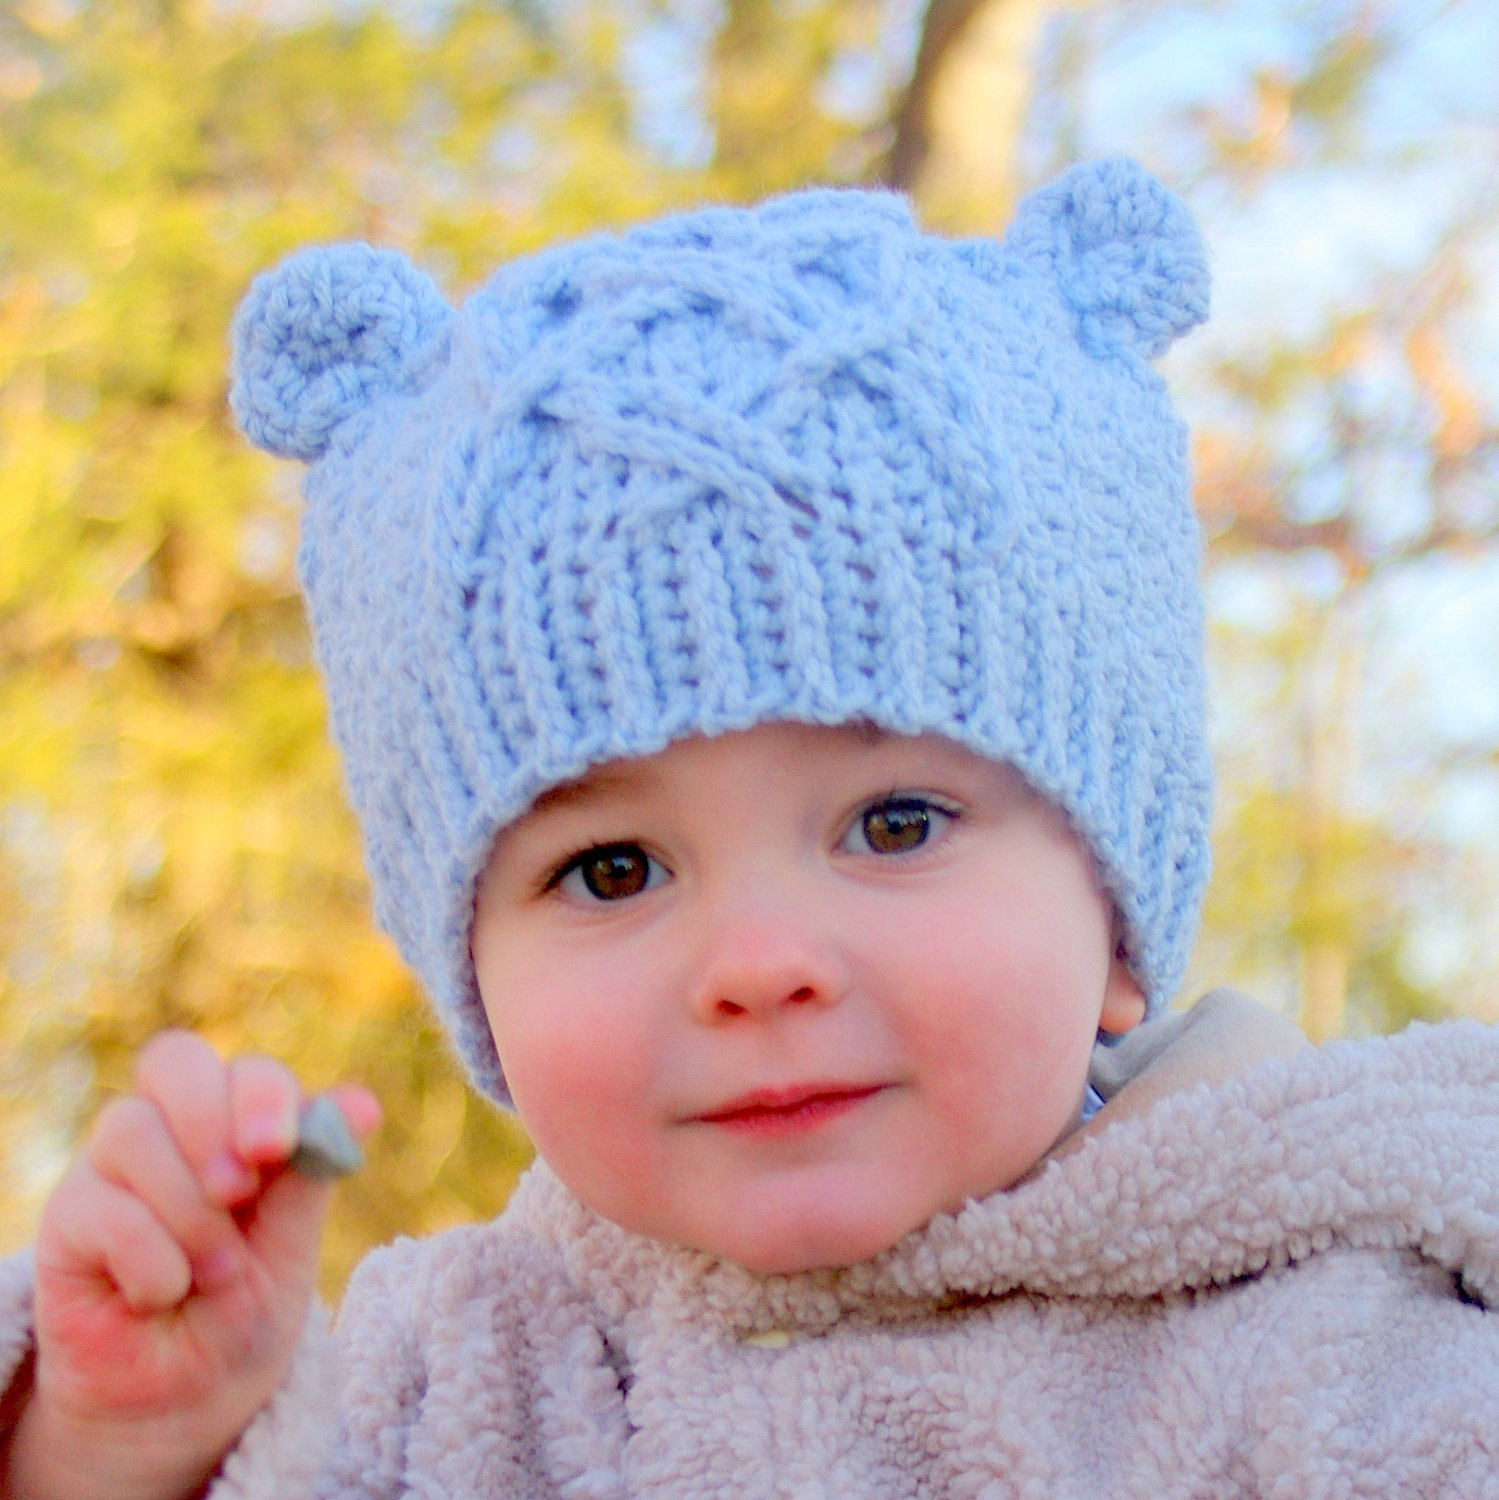 Crochet Patterns Hats For Toddlers : Crochet patterns Little Bear Cable Hat Instant Downlad